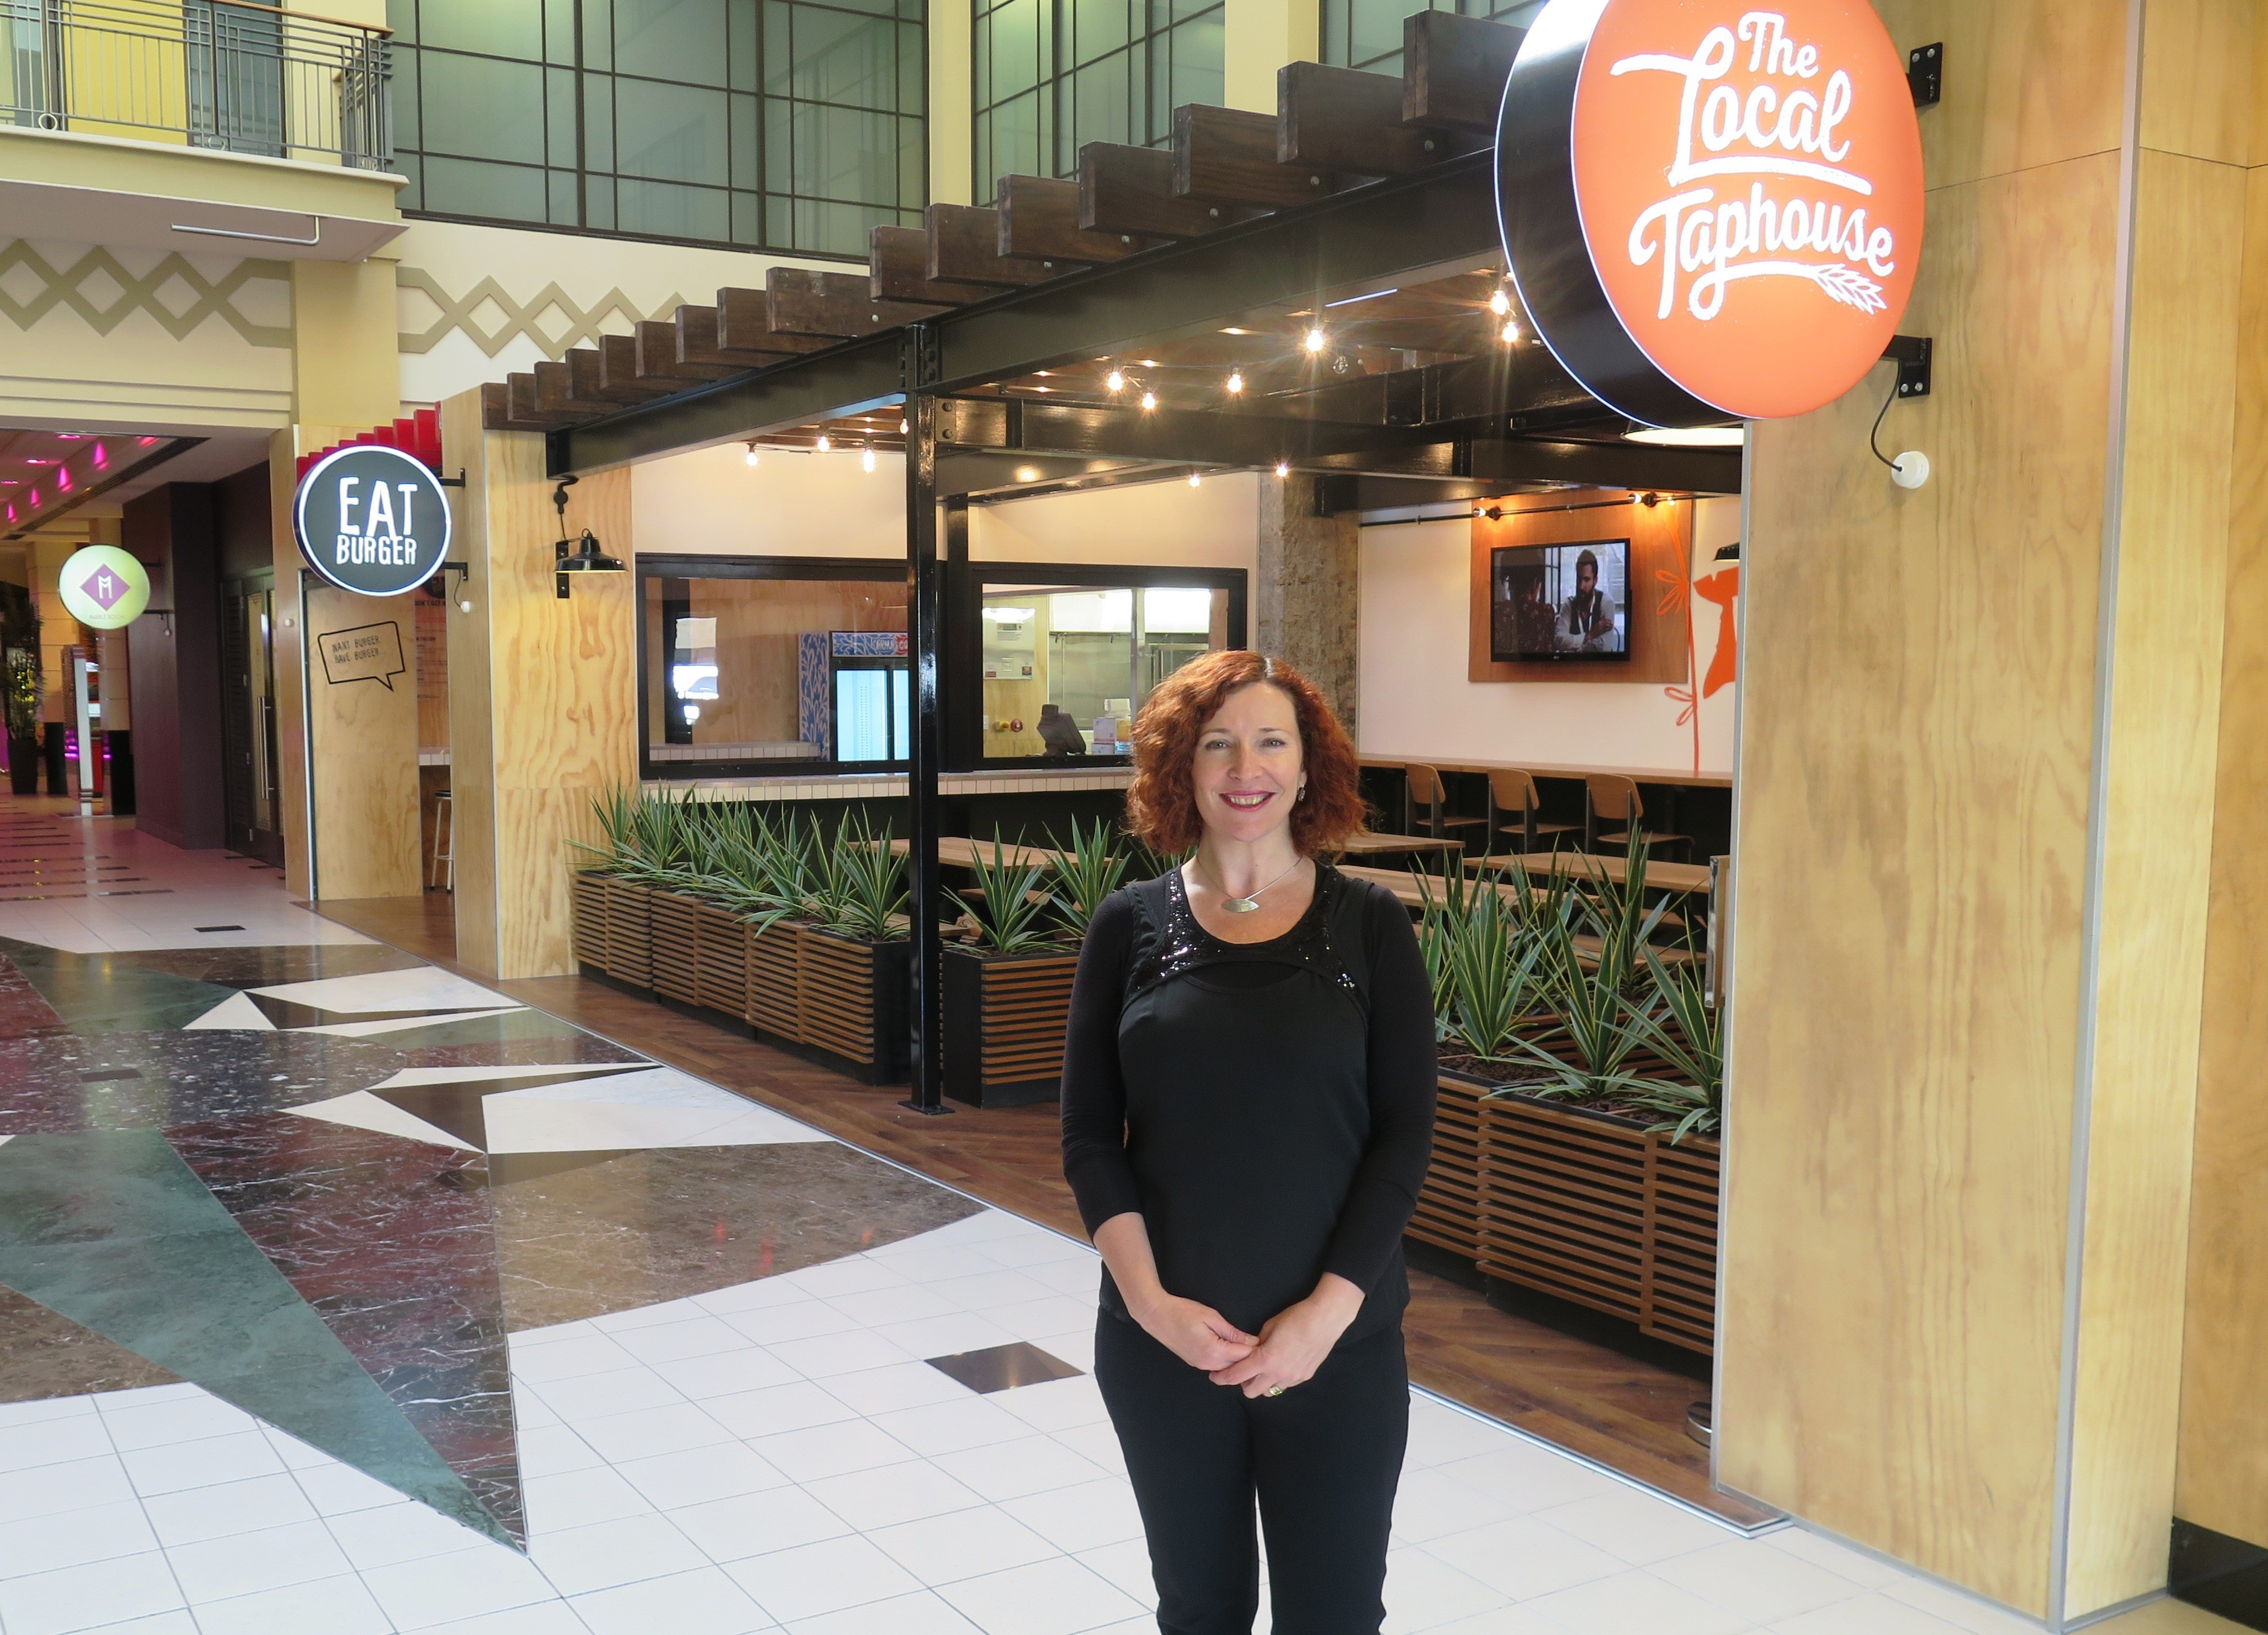 SKYCITY Hamilton adds pizzazz to local food scene with five new outlets